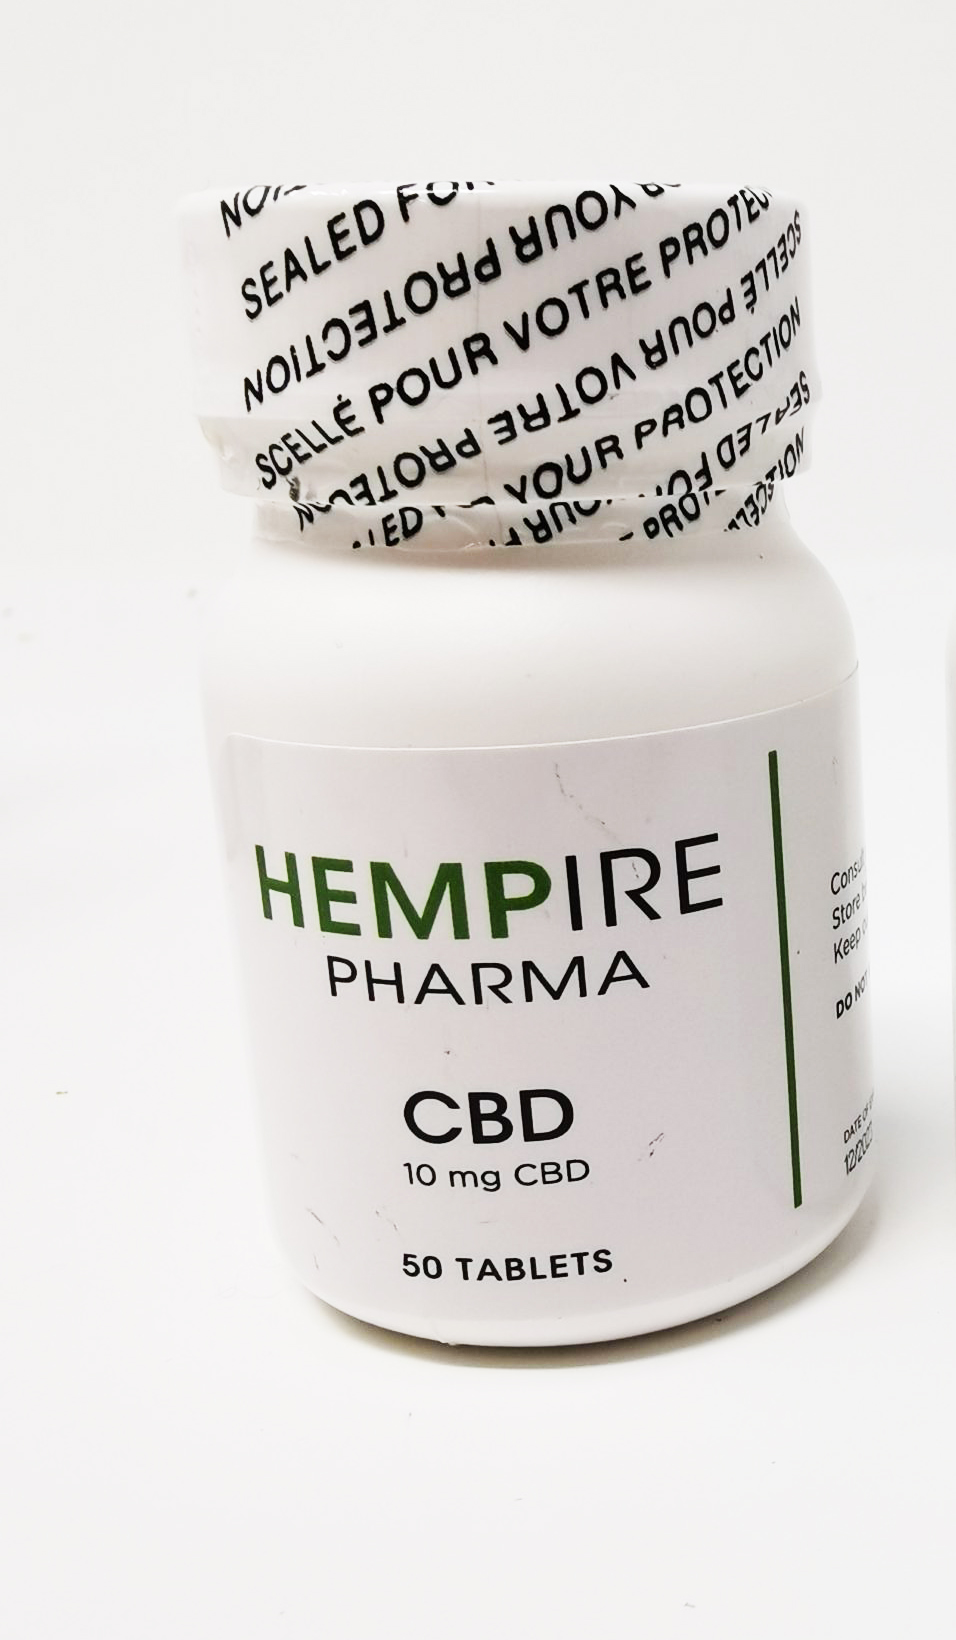 Hempire CBD Pills by Buy Weed 247 - Image © 2021 Buy Weed 247. All Rights Reserved.